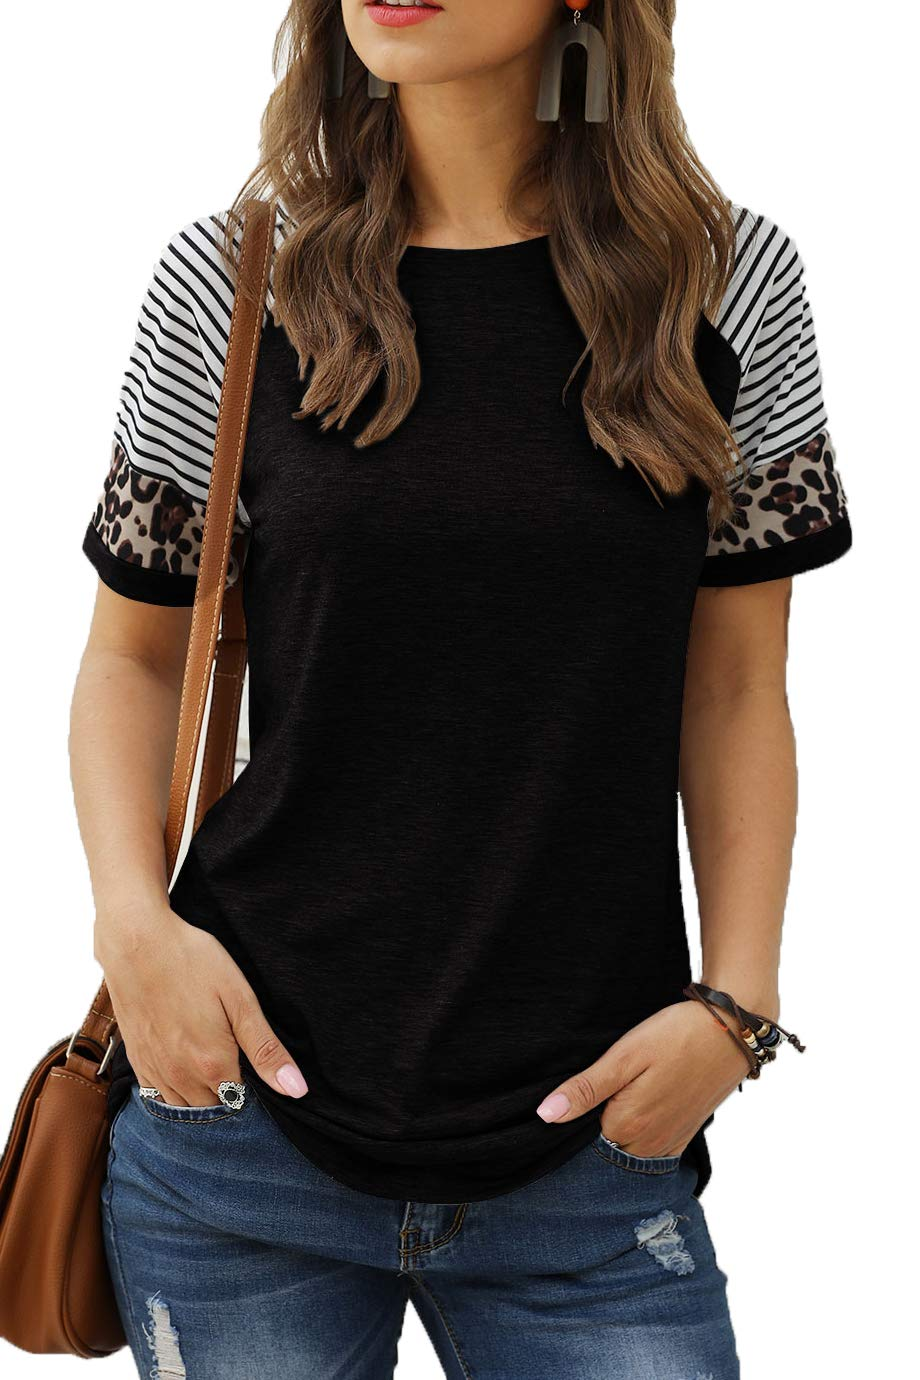 Sieanear Womens T Shirts Short Sleeve Striped Color Block Leopard Casual Tops